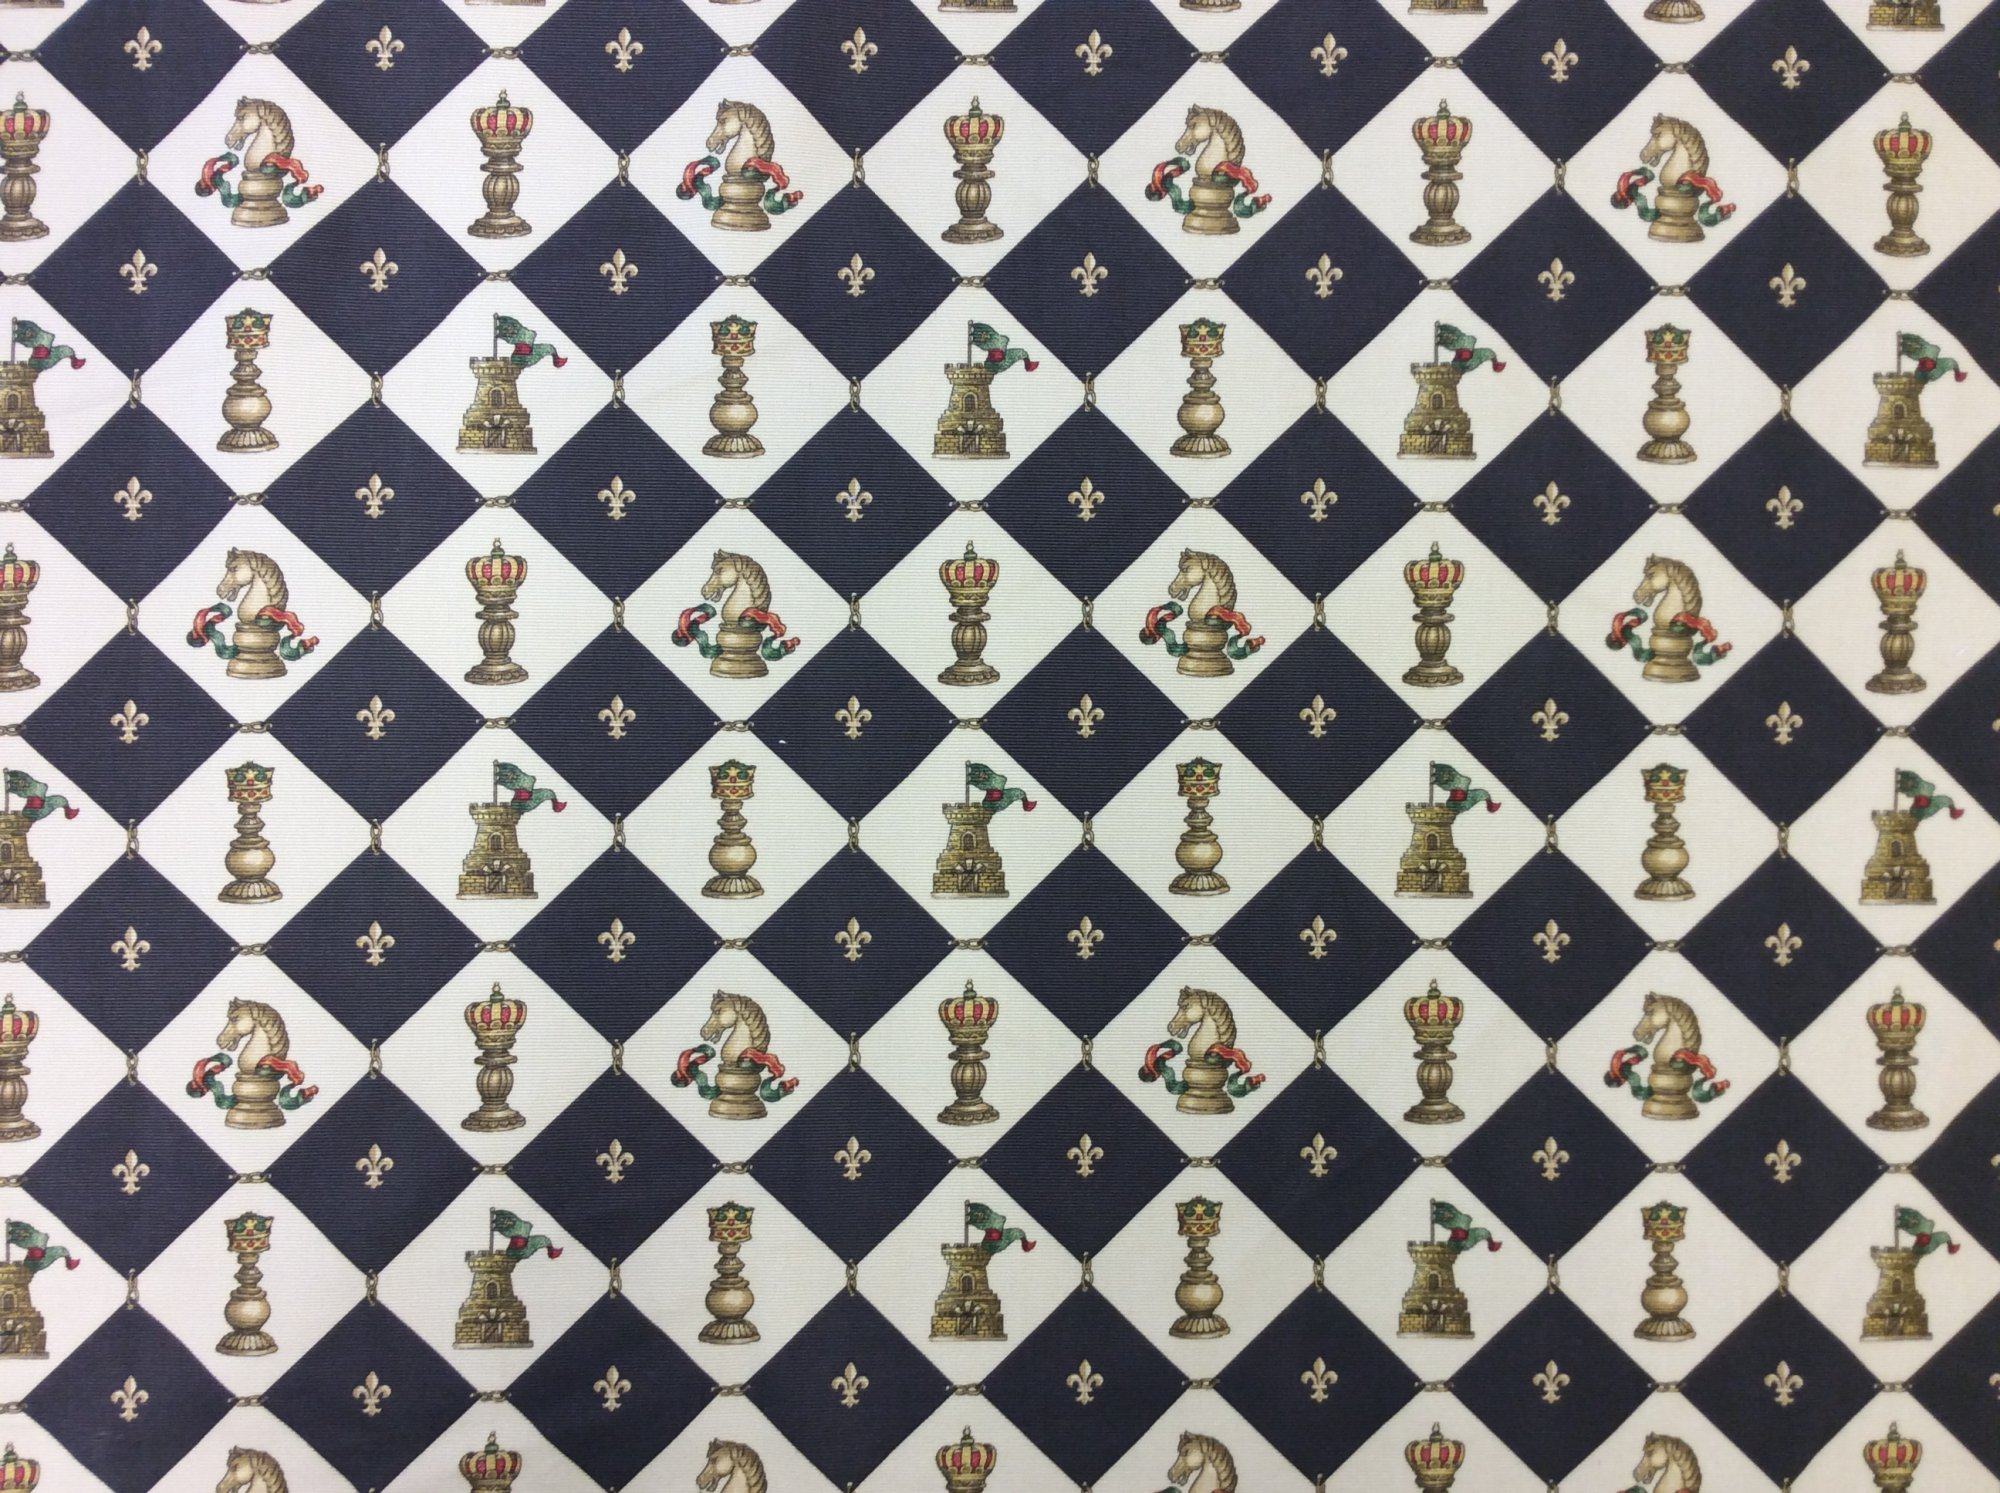 Chess Print Gameboard Ottoman Cotton Upholstery Home Decor Fabric 357OR